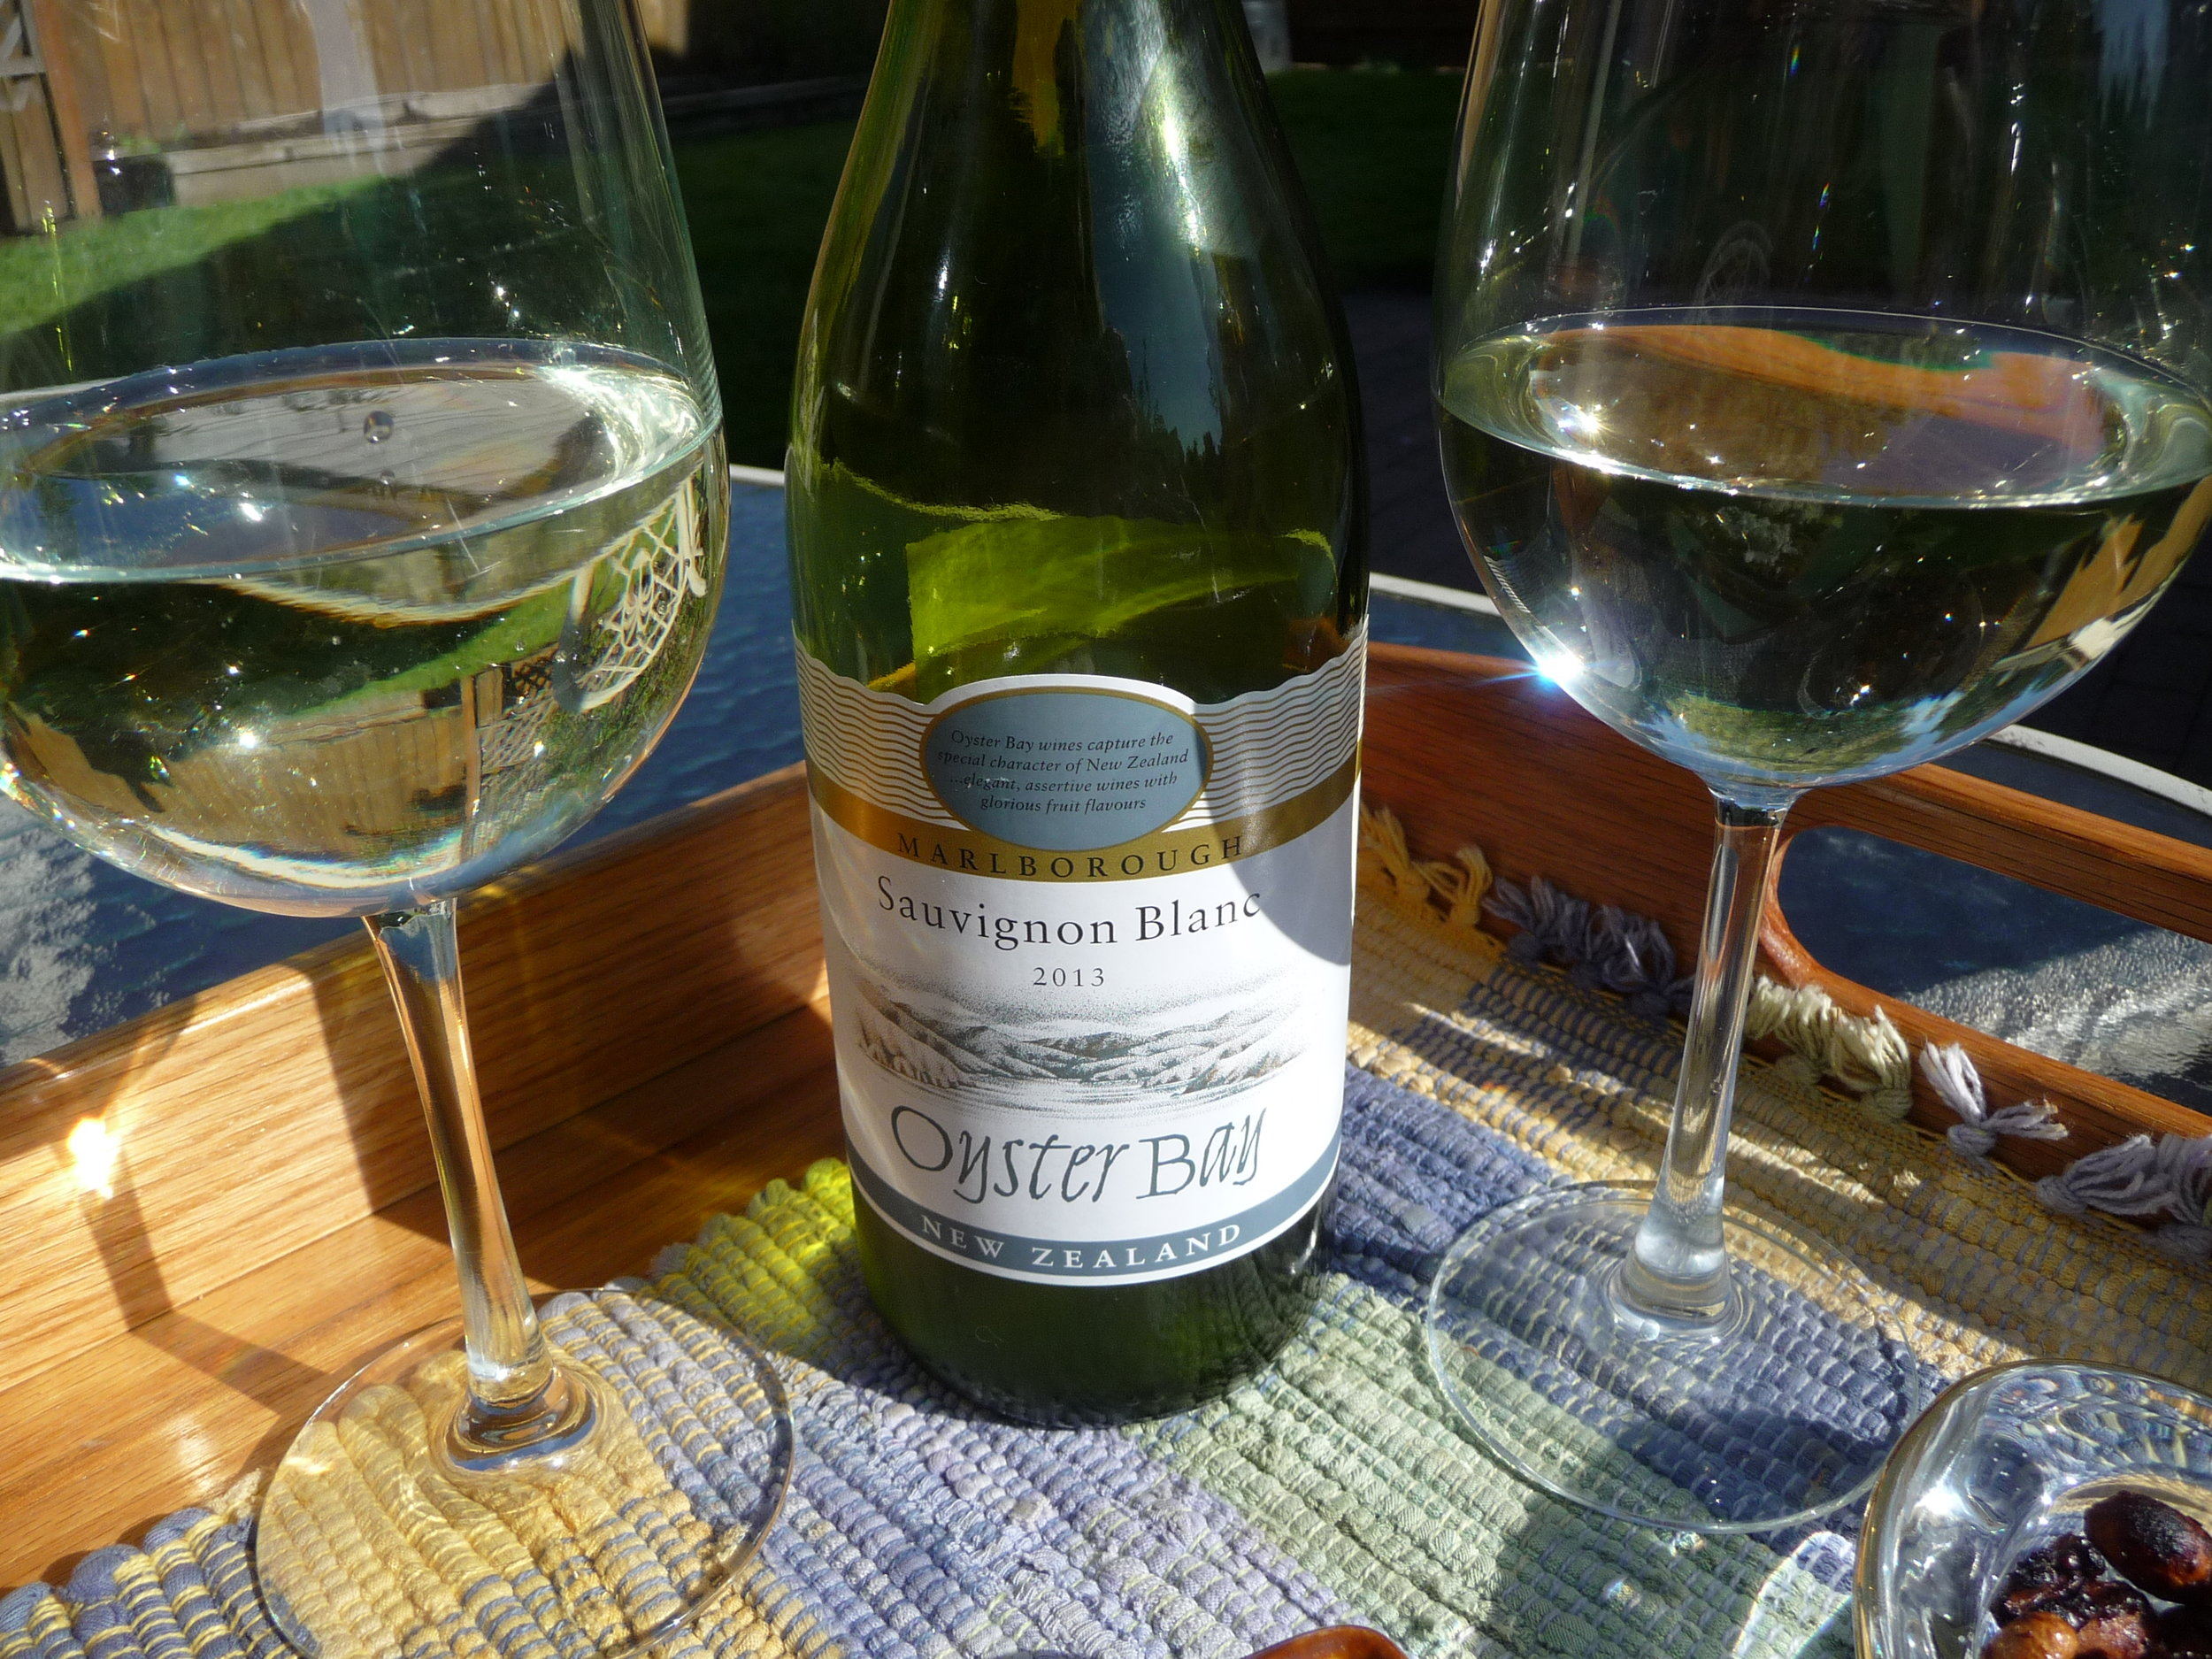 This 2012 Oyster Bay Sauvignon Blanc has the right balance of crisp minerality to accompany many picnic salads as well as scallops, shrimp and prawns.